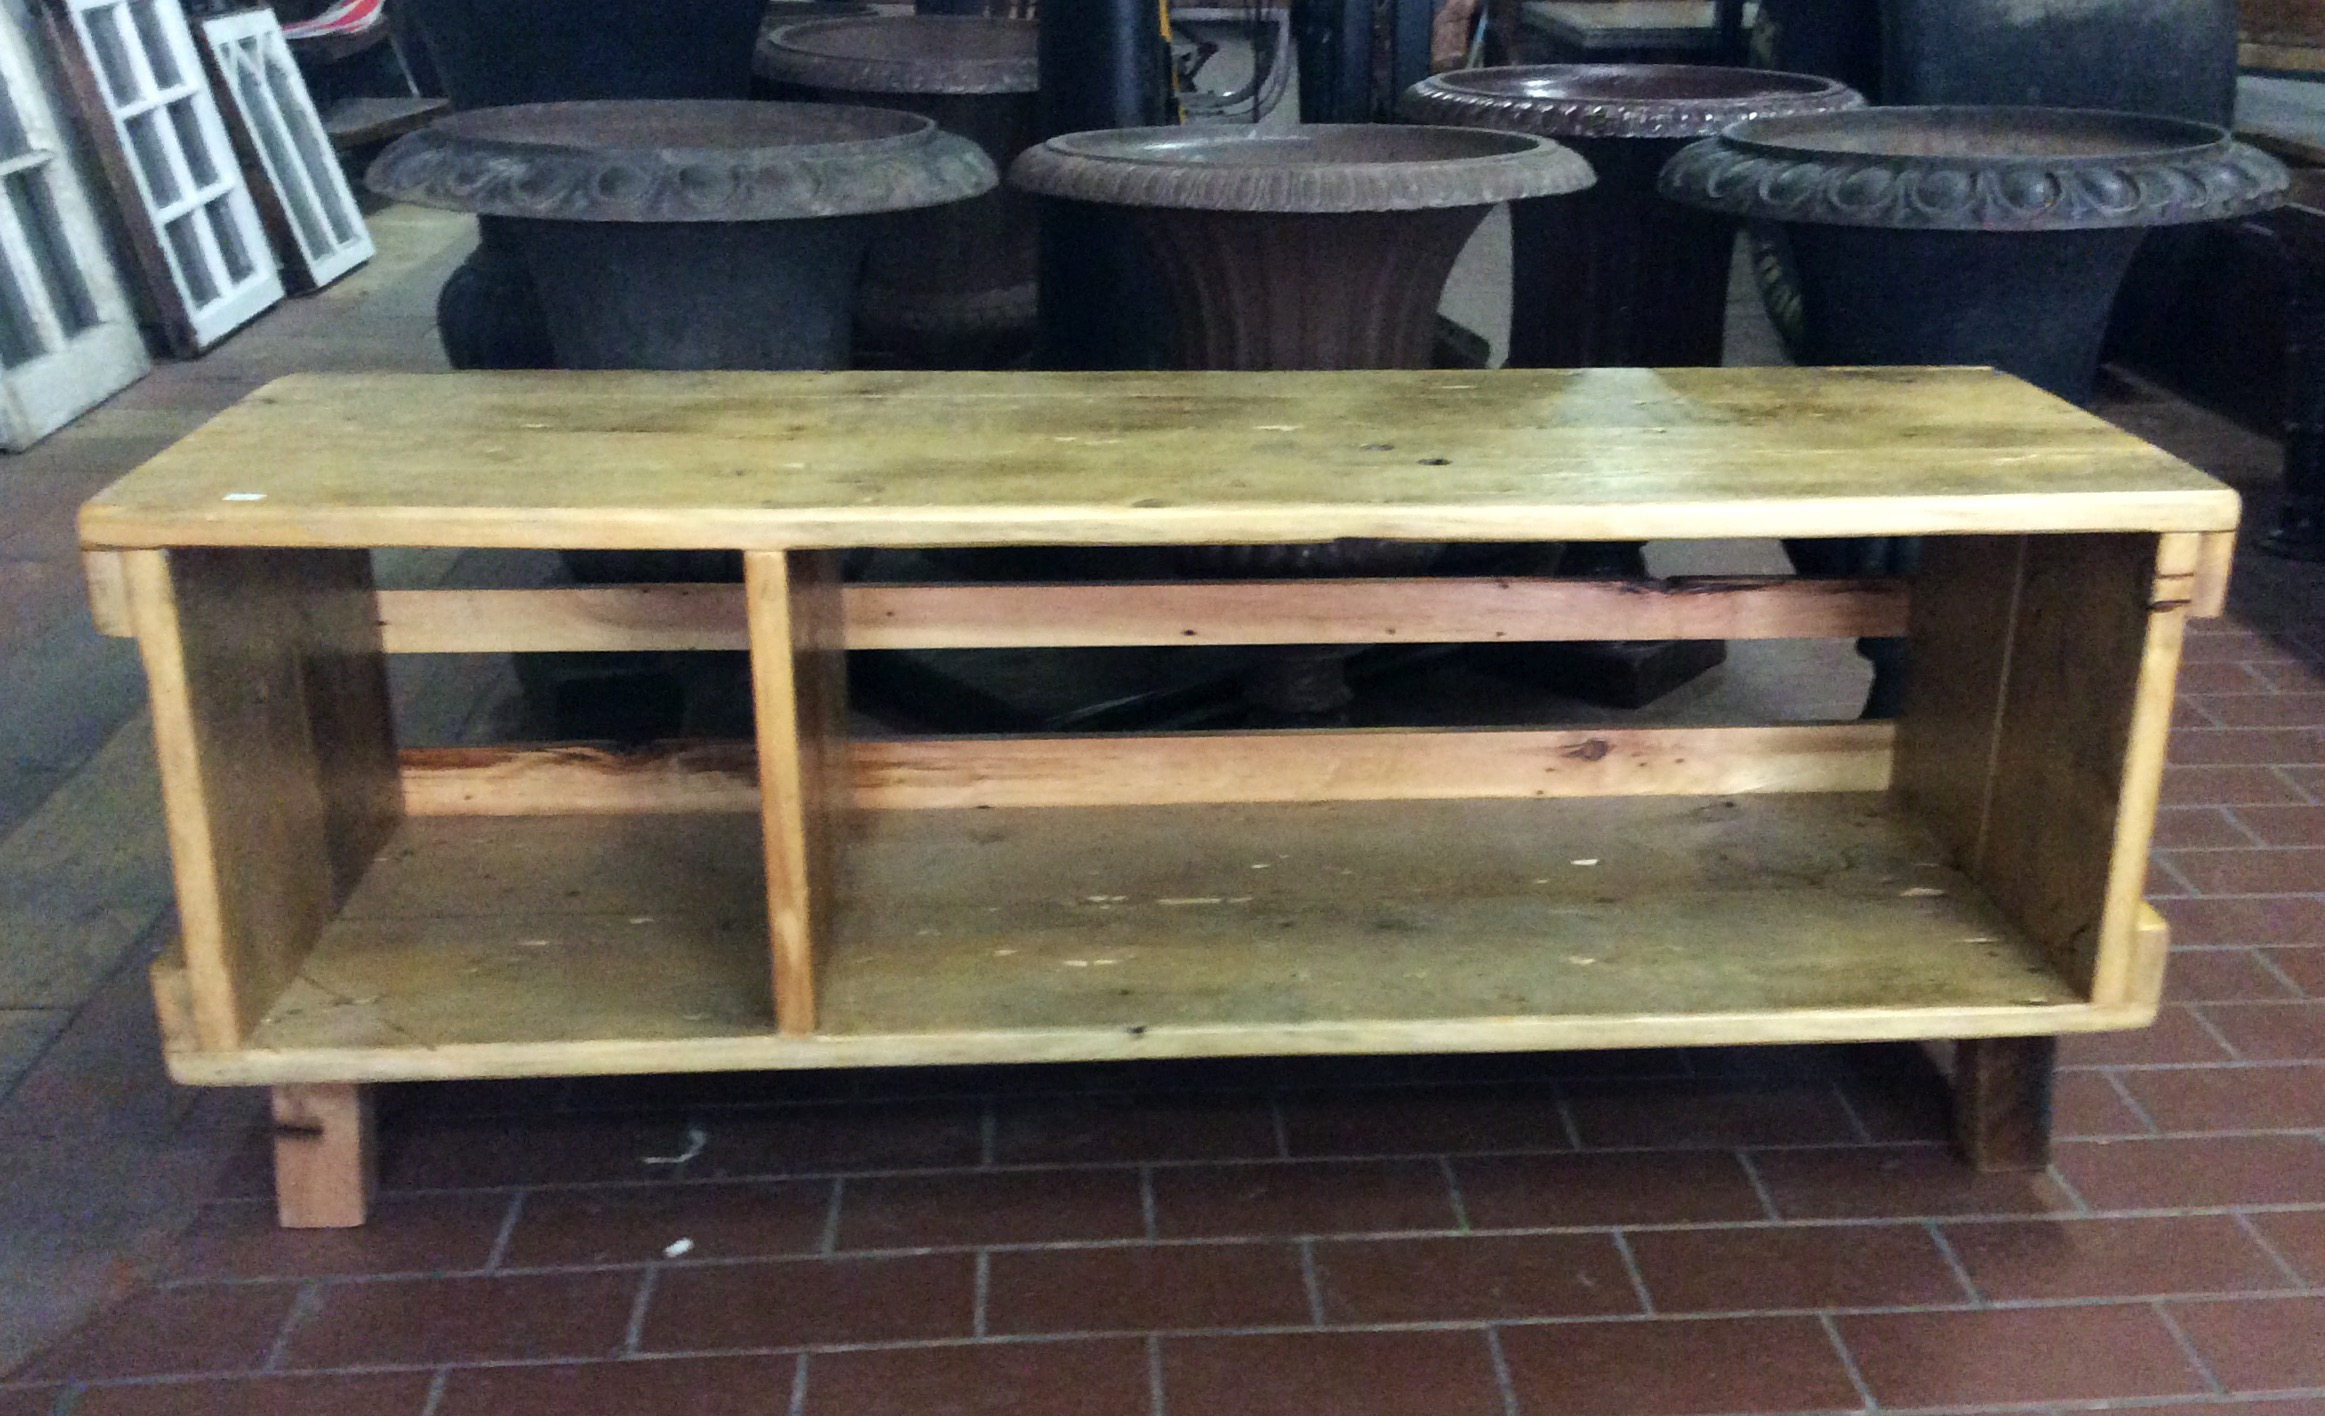 SOLD    Made of the same materials as our thick wooden crates, we put together this rustic little table perfect for a tv stand, coffee table, or bookshelf.